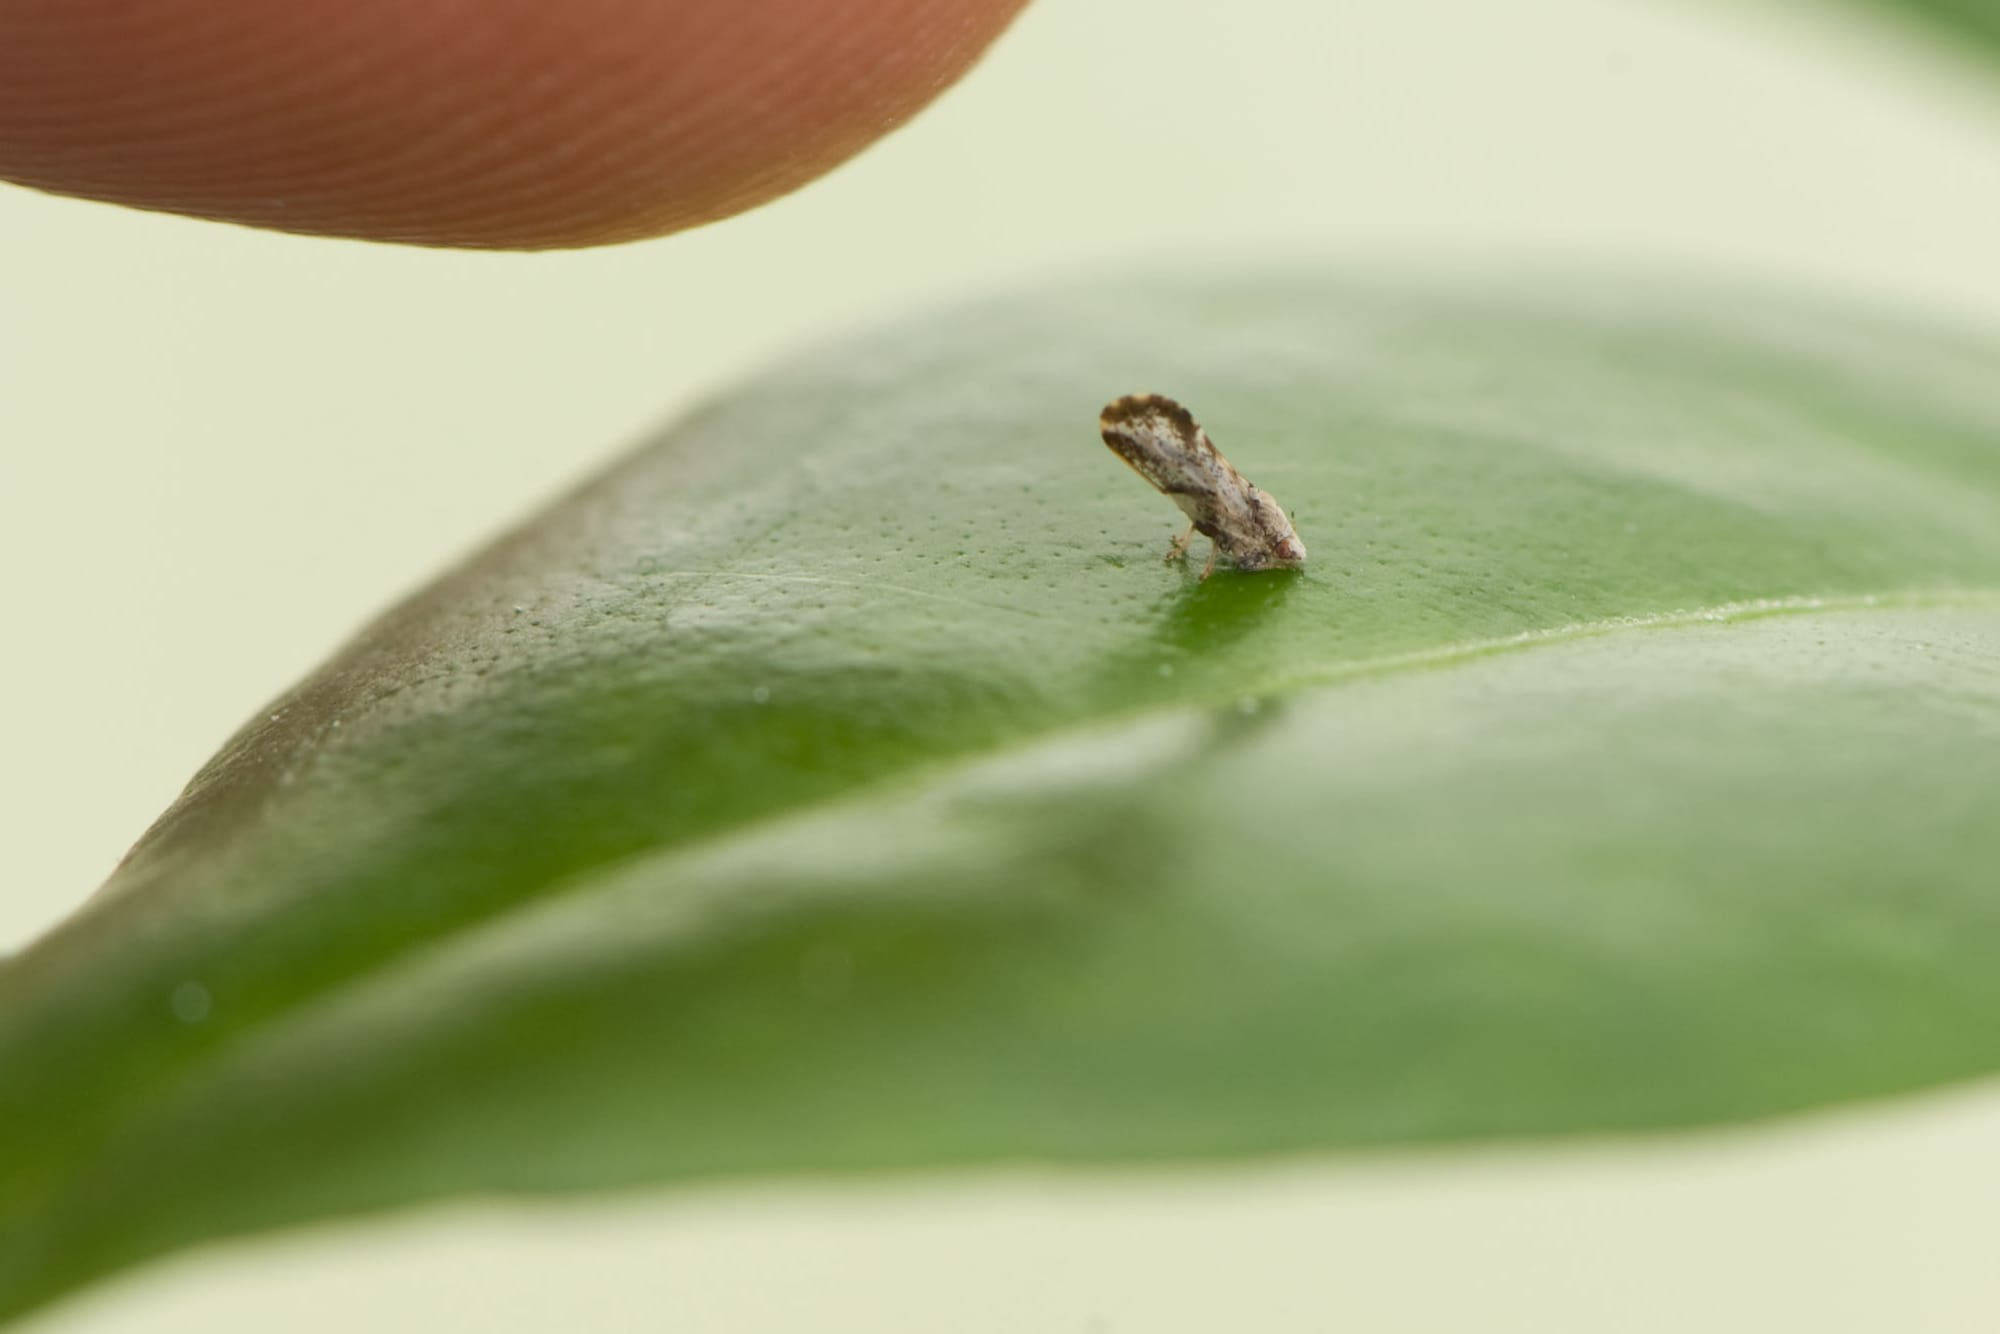 Fatal citrus disease HLB shows up in California